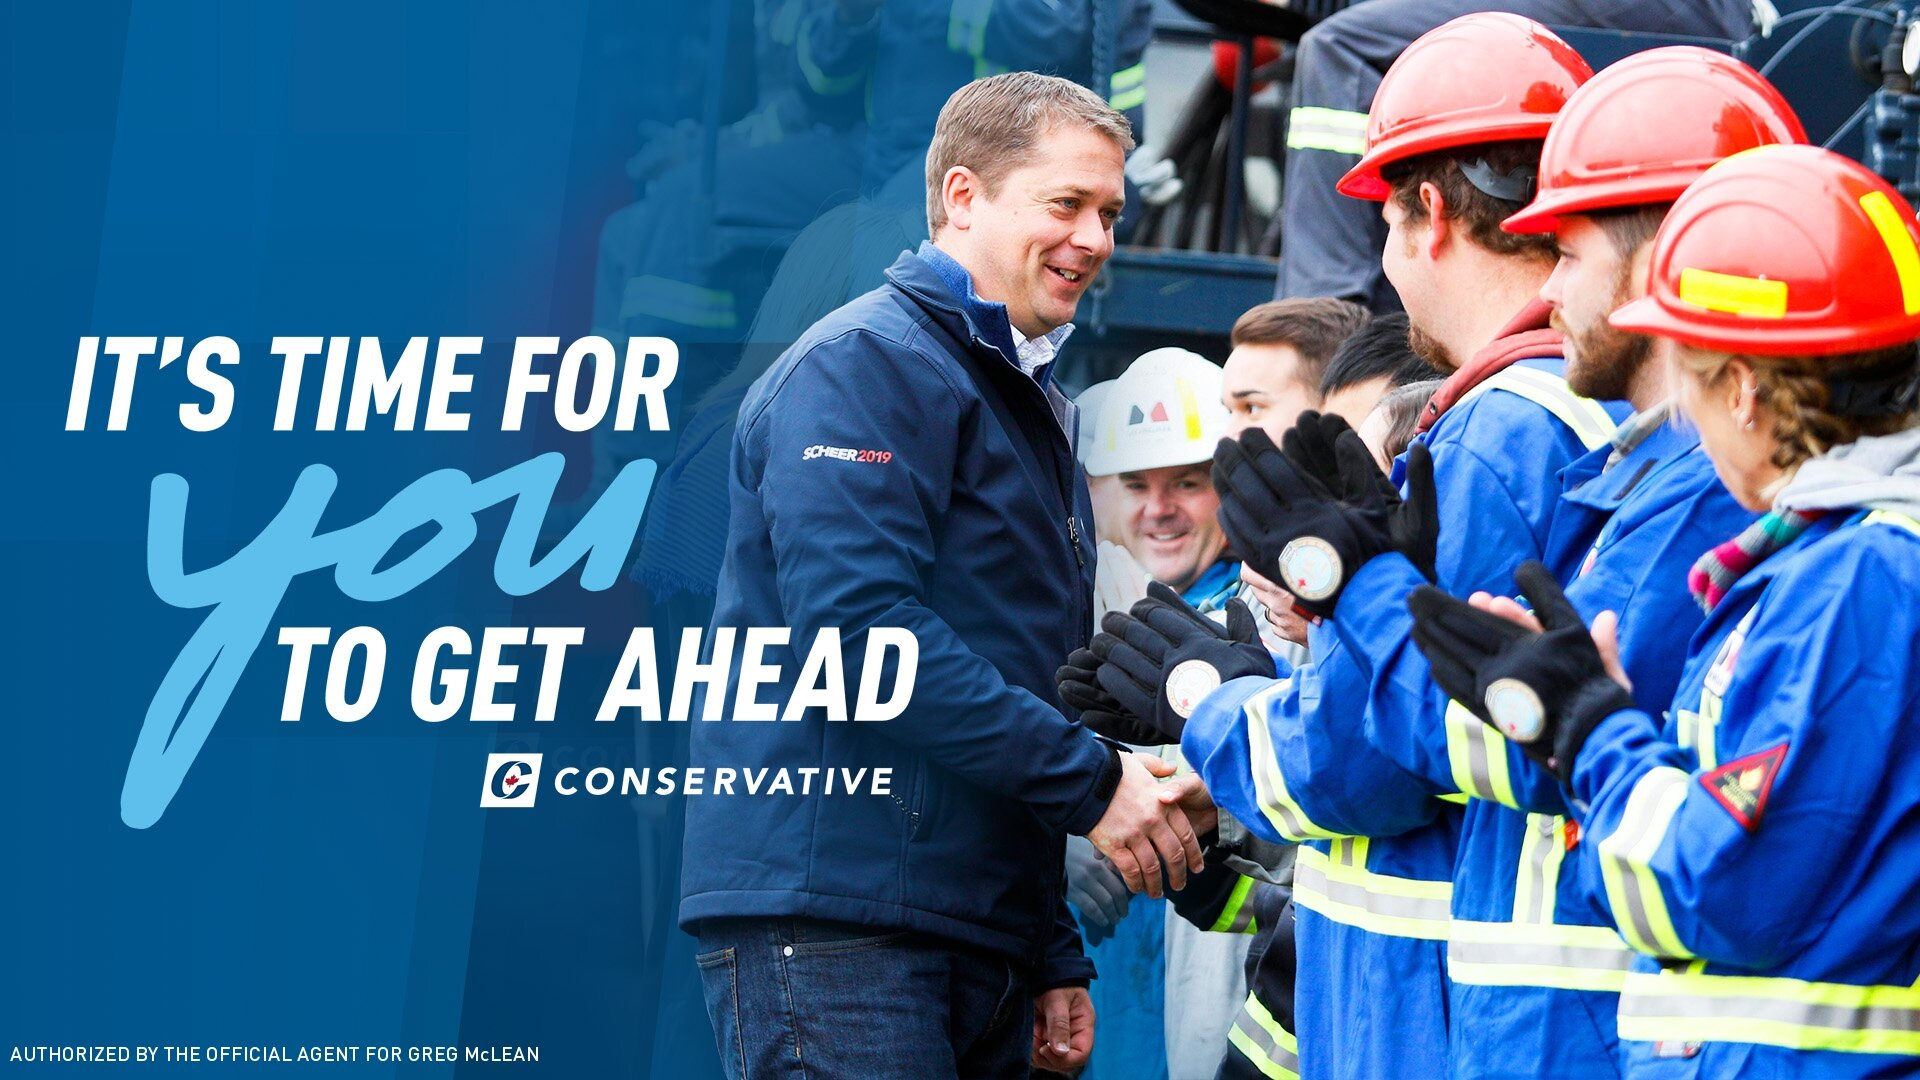 Platform - The Conservative Party's fully costed platform is available here: https://www.andrewscheer.ca/en/platformSome of the highlights of interest to Calgary Centre are listed below.